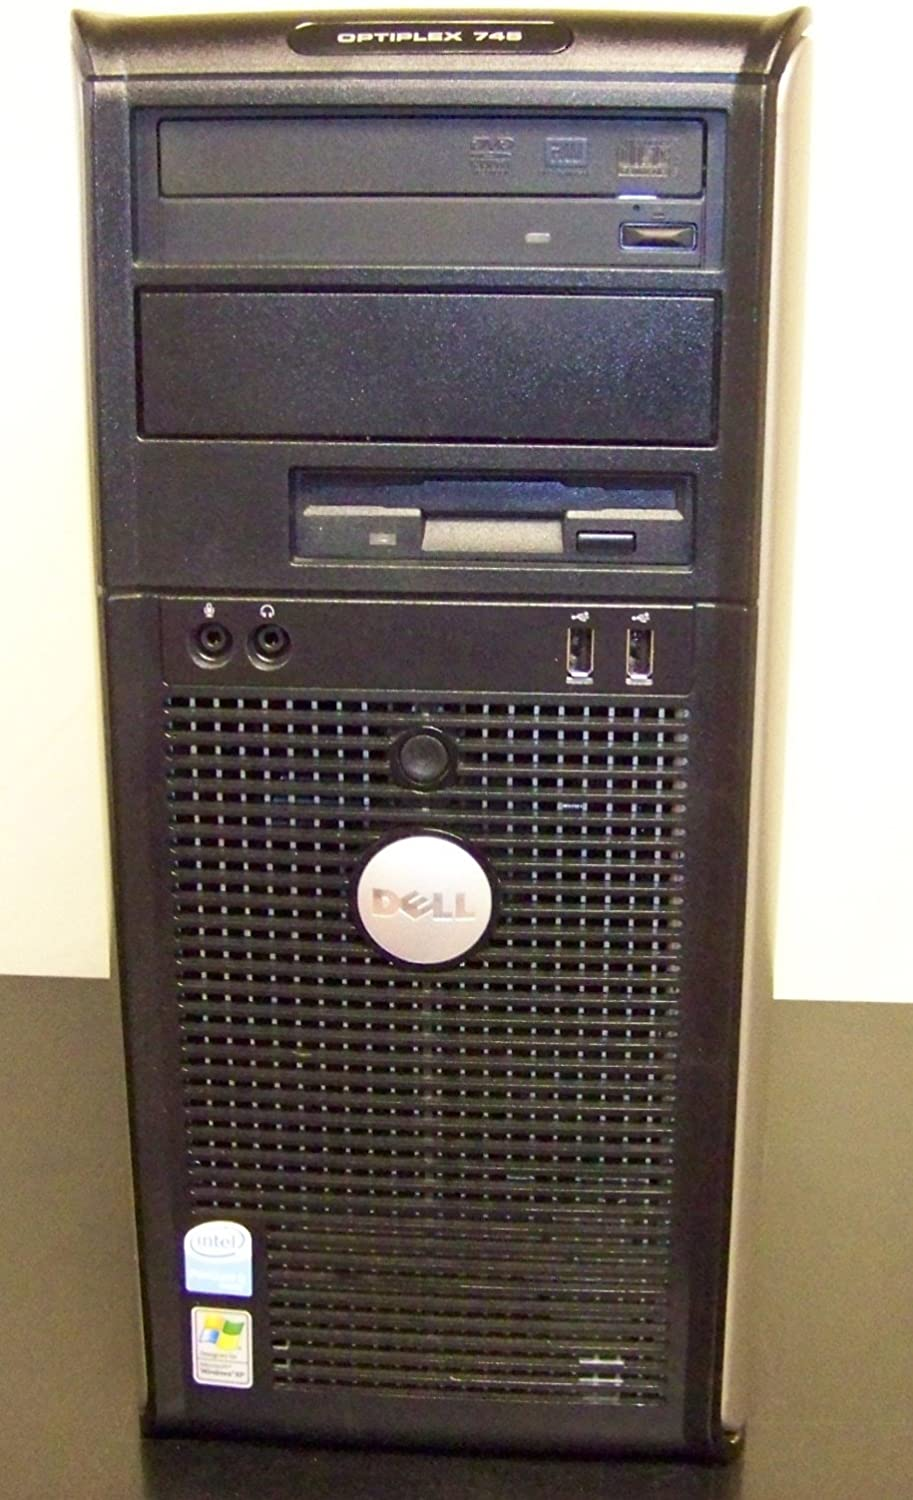 Dell Gx620 Computer With Myself Electronic Projects Circuits